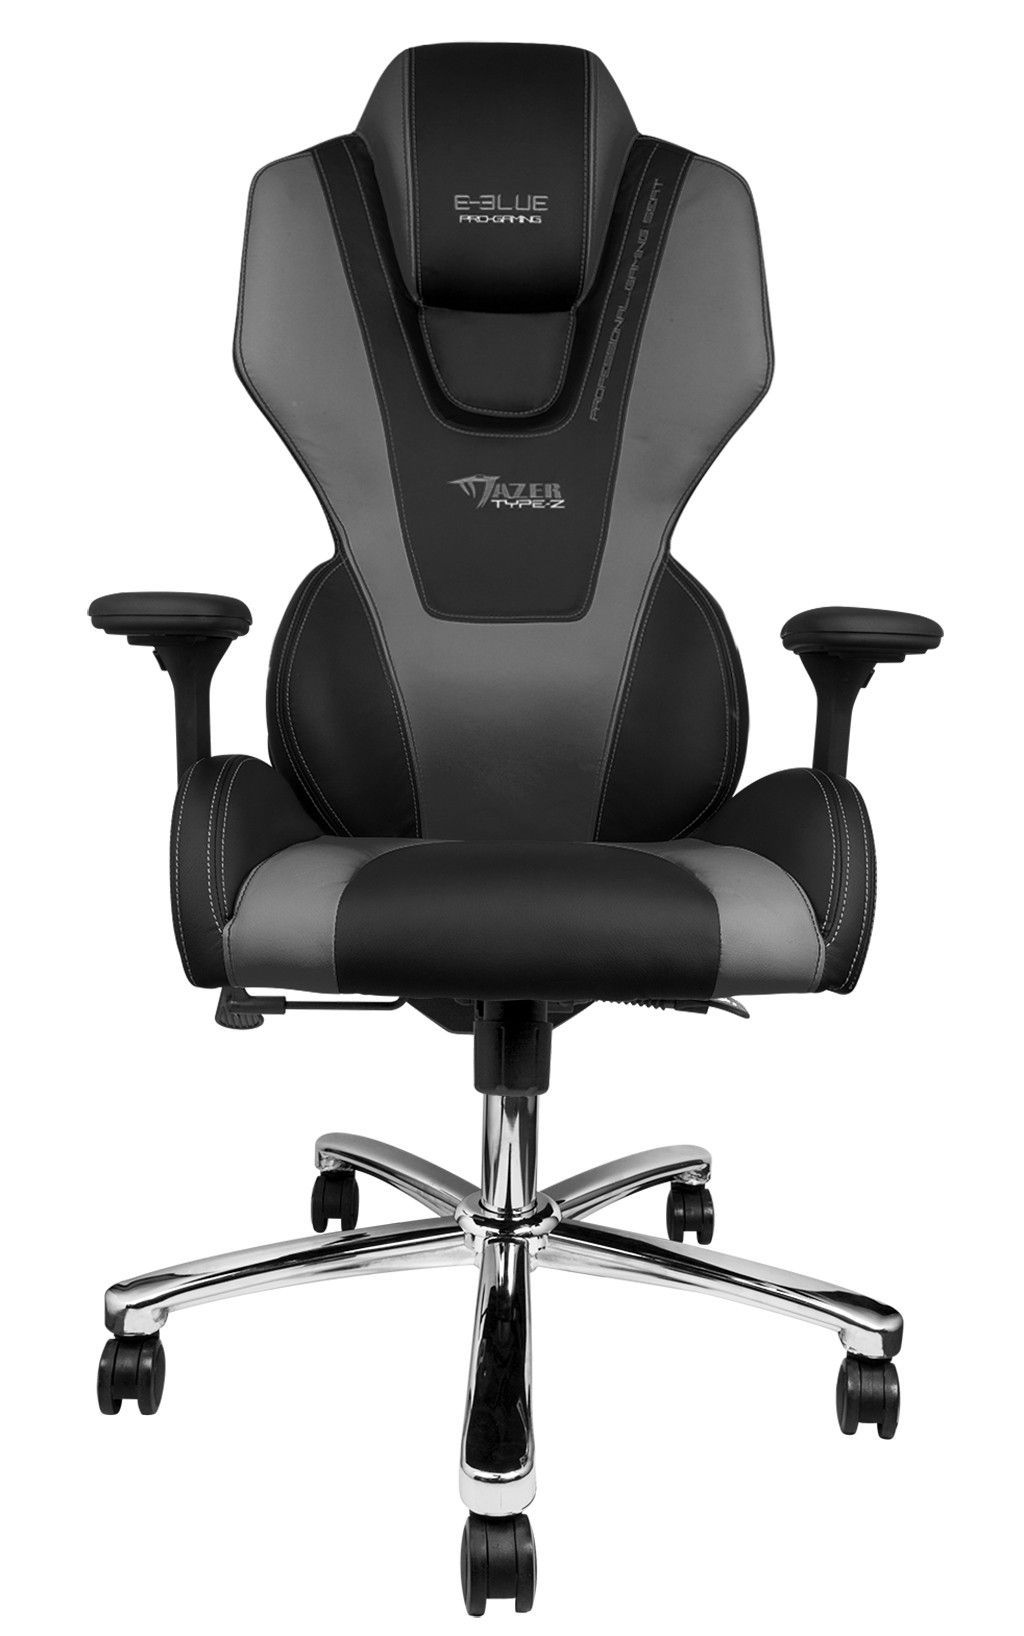 Amazing The Mazer Pro Gaming Chair Allows For Ergonomic Comfort With Ultra  Breathable Fabric. The Double